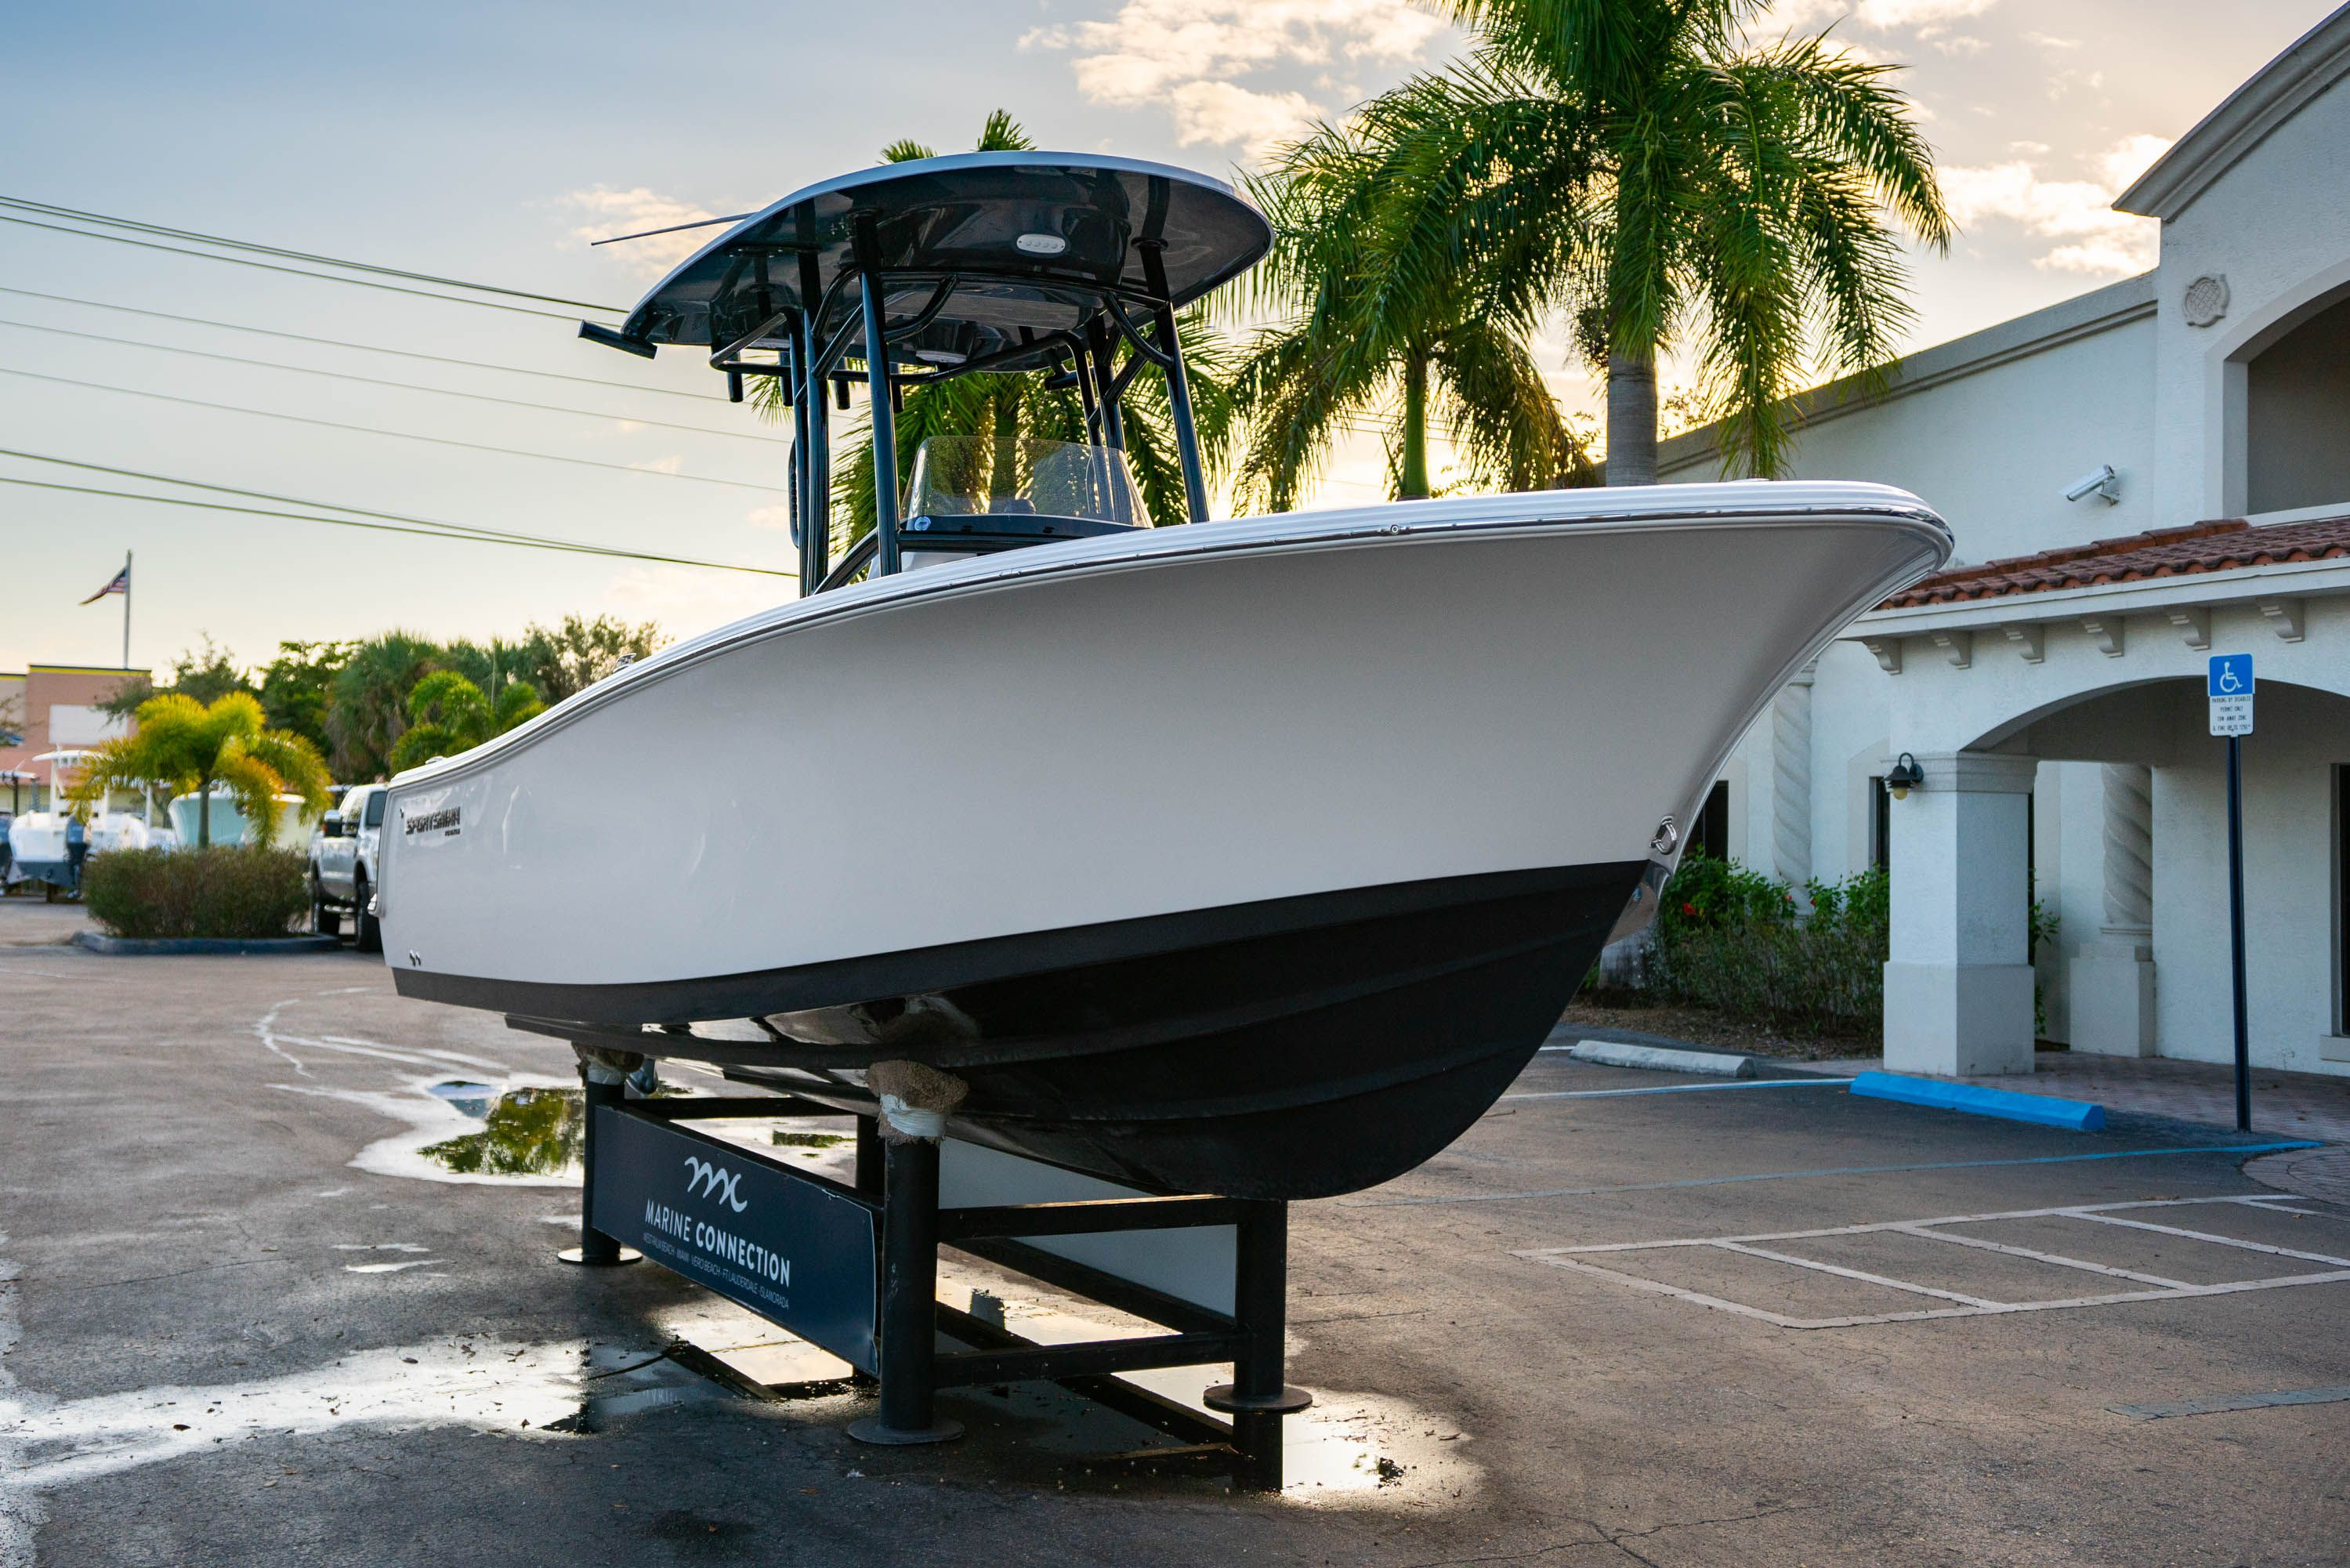 Thumbnail 1 for New 2020 Sportsman Open 232 Center Console boat for sale in West Palm Beach, FL